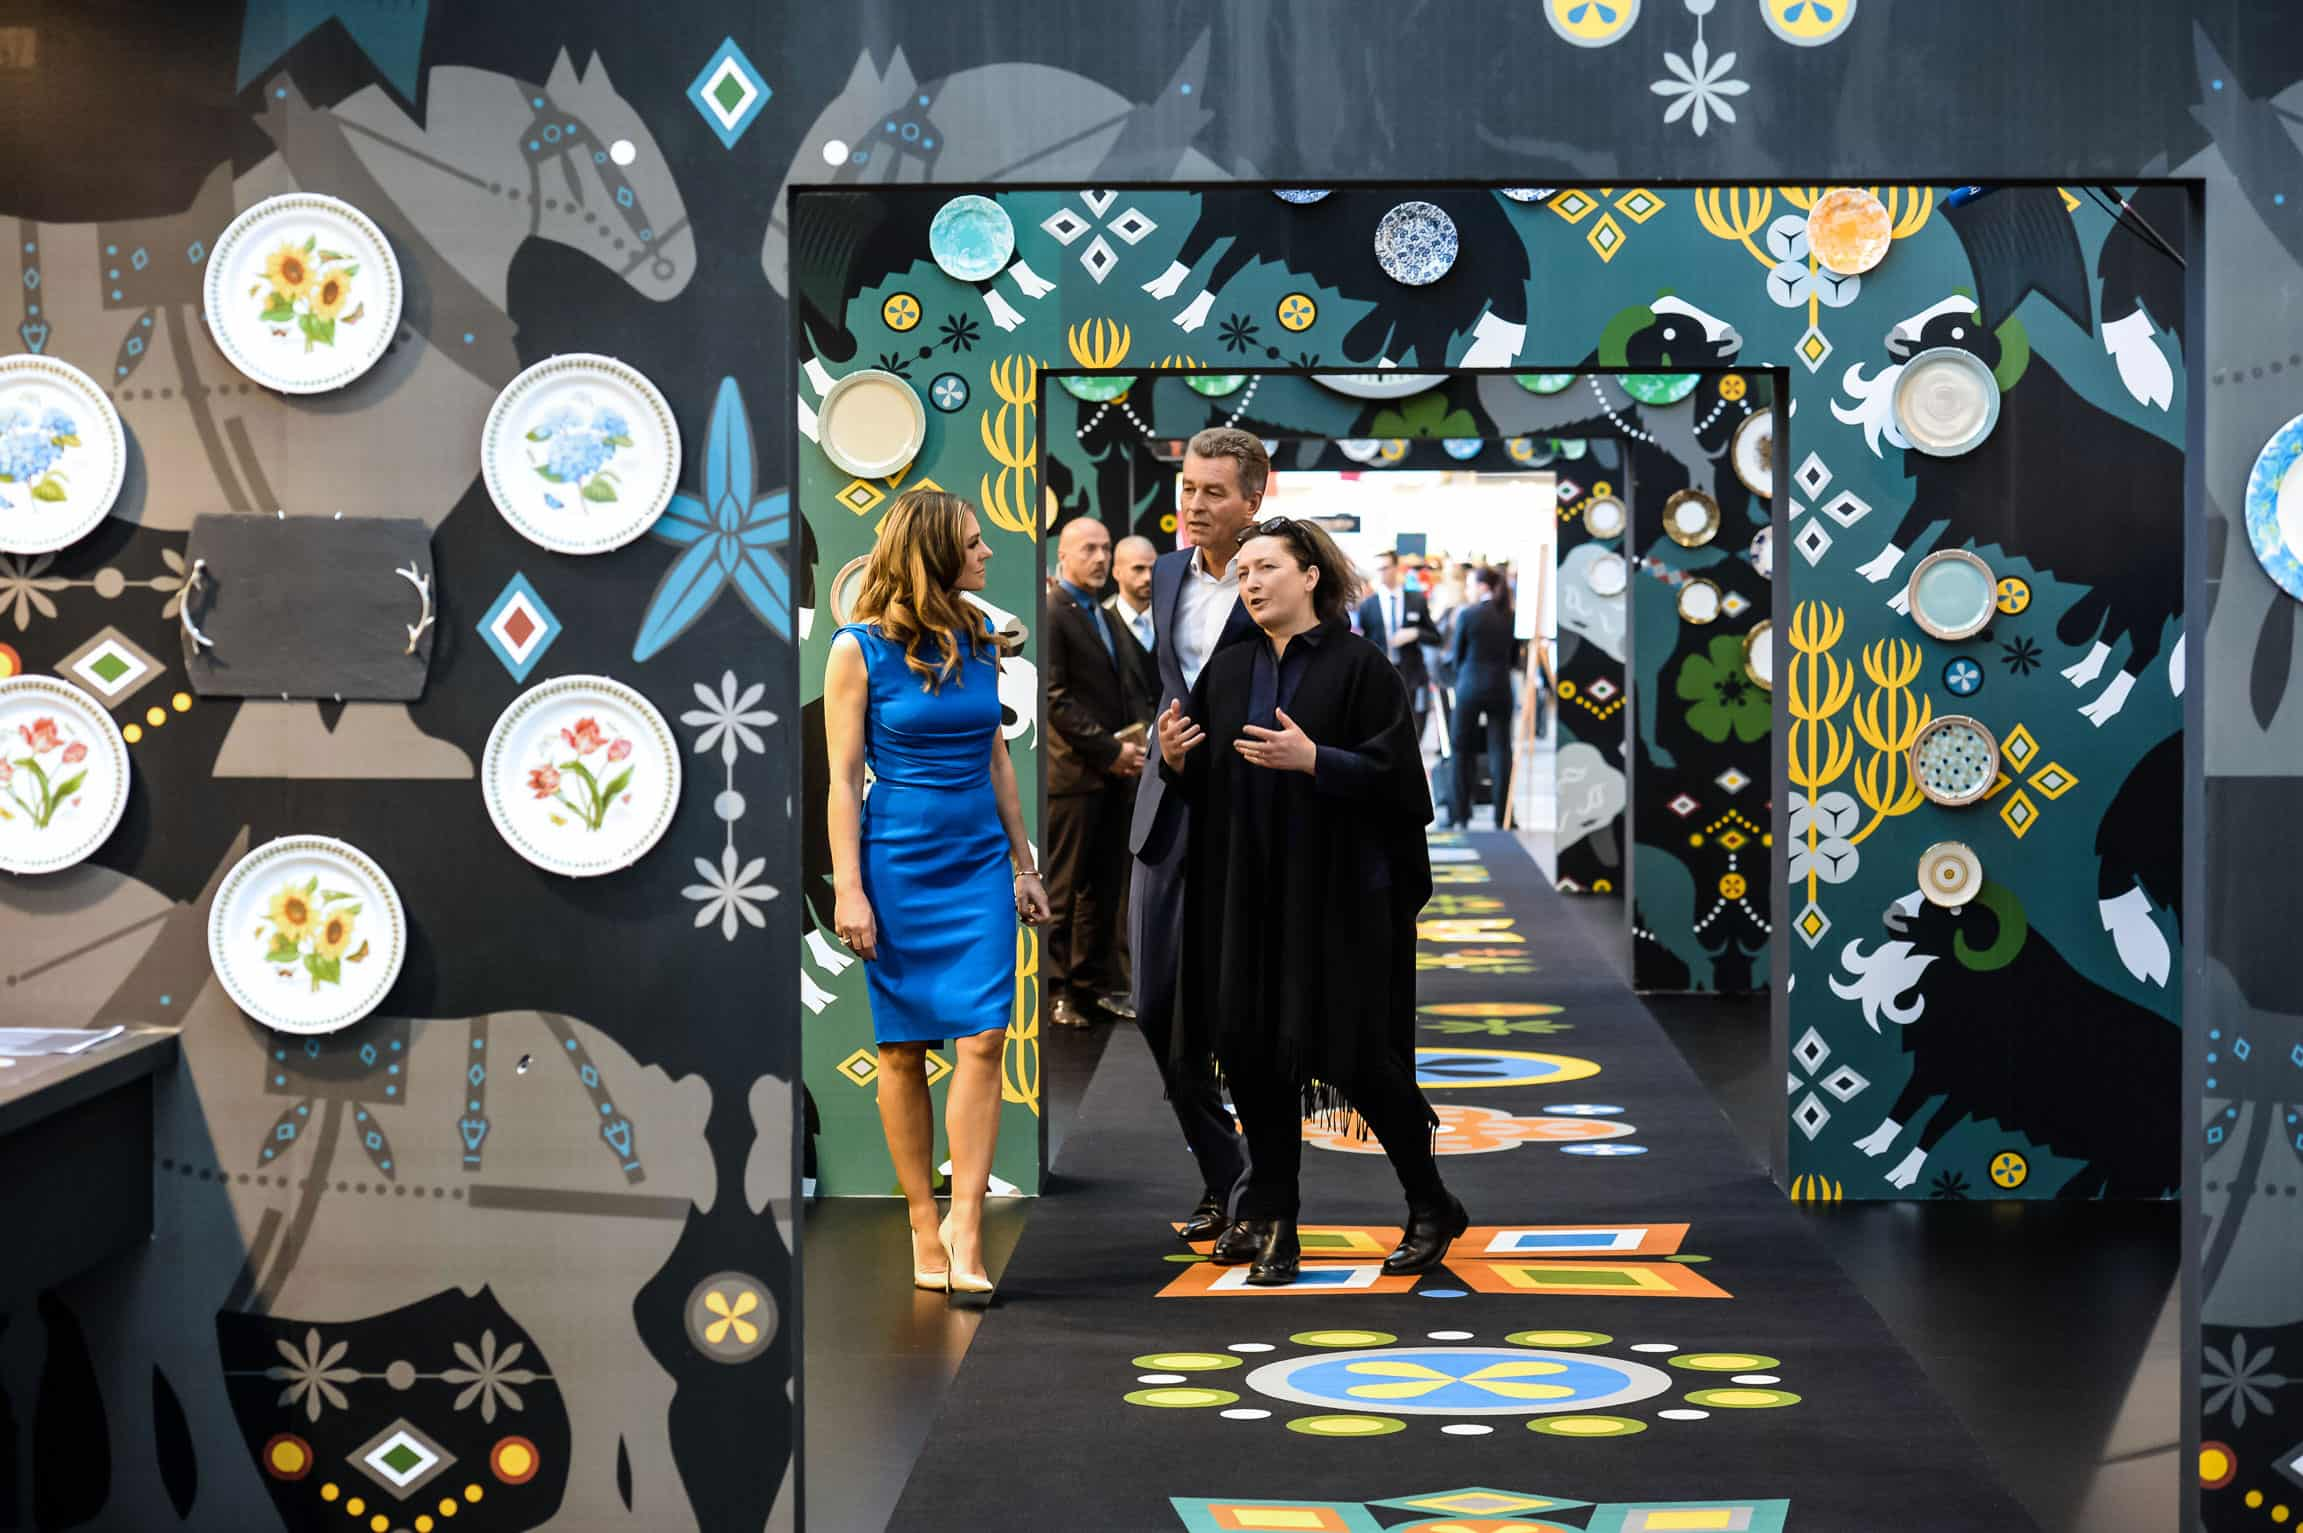 ambiente frankfurt 2019 ambiente frankfurt 2019 Ambiente Frankfurt 2019 Event Guide Ambiente UK Partner Country Exhibition min